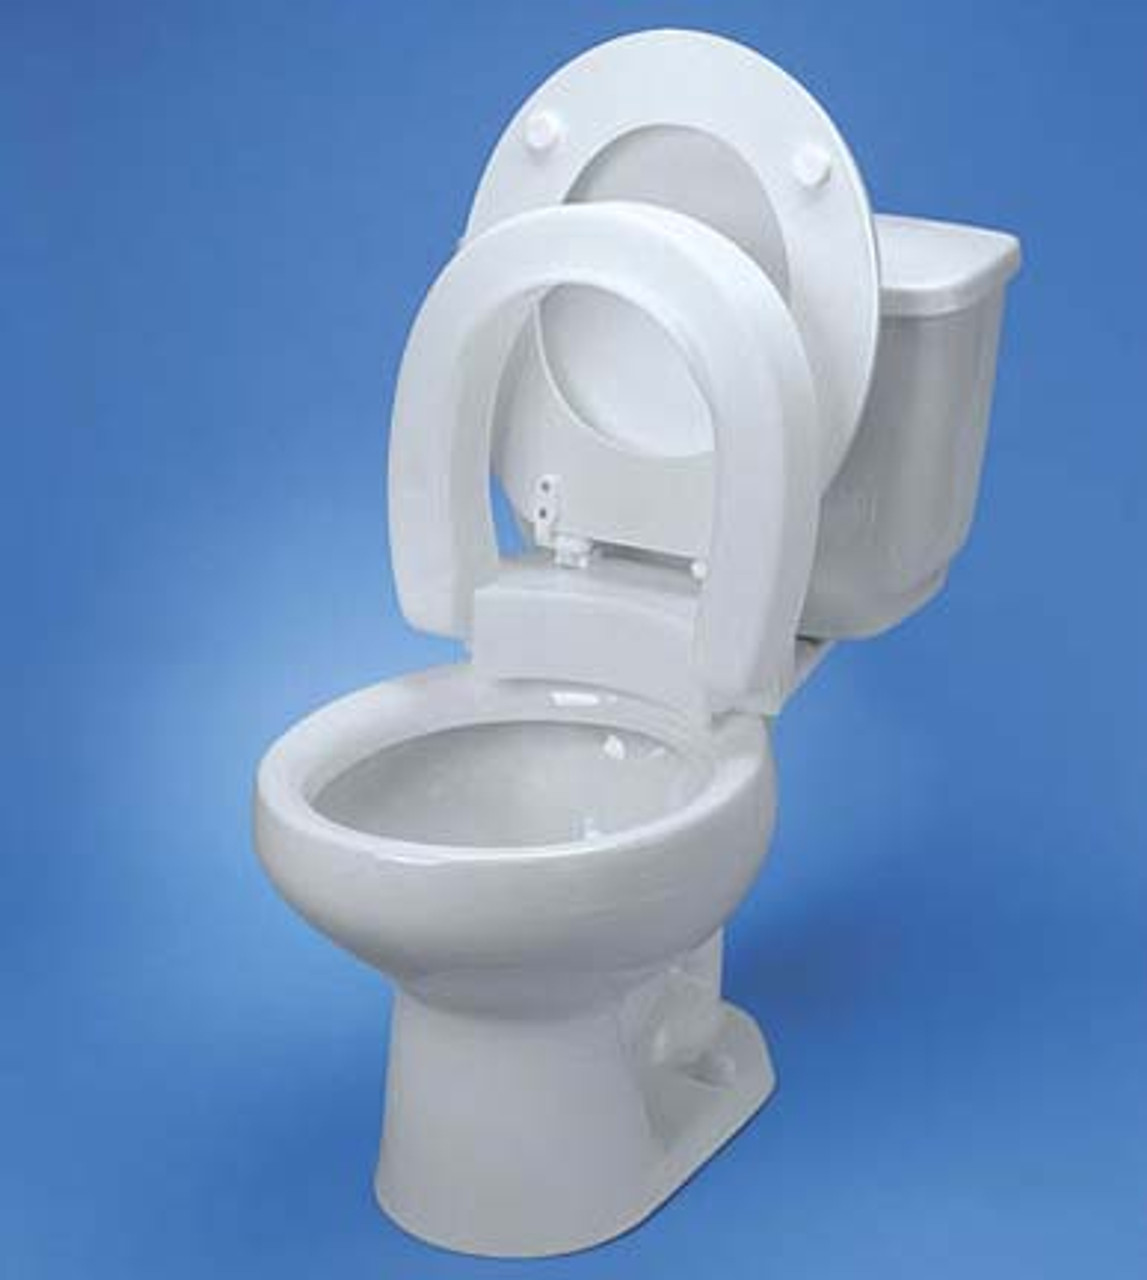 Pleasing Maddak Tall Ette Hinged Elevated Toilet Seat For Elongated Commodes 3 H 350 Lbs Capacity Inzonedesignstudio Interior Chair Design Inzonedesignstudiocom